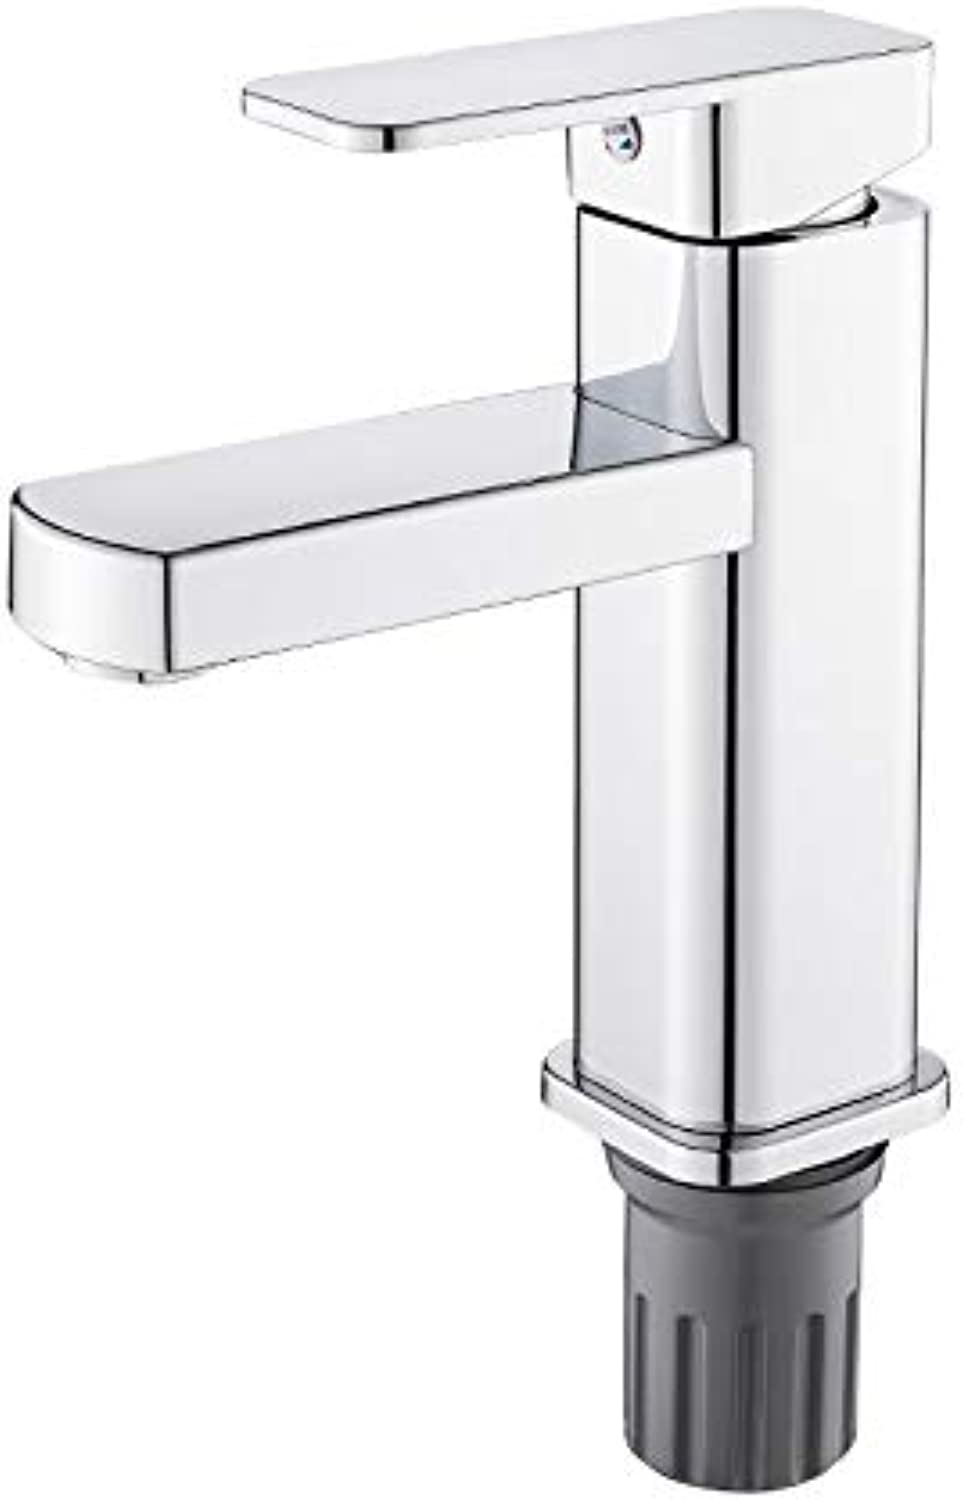 Washbasin faucet_Jieyan bathroom Bathroom bathroom washbasin Above counter basin Pedestal basin